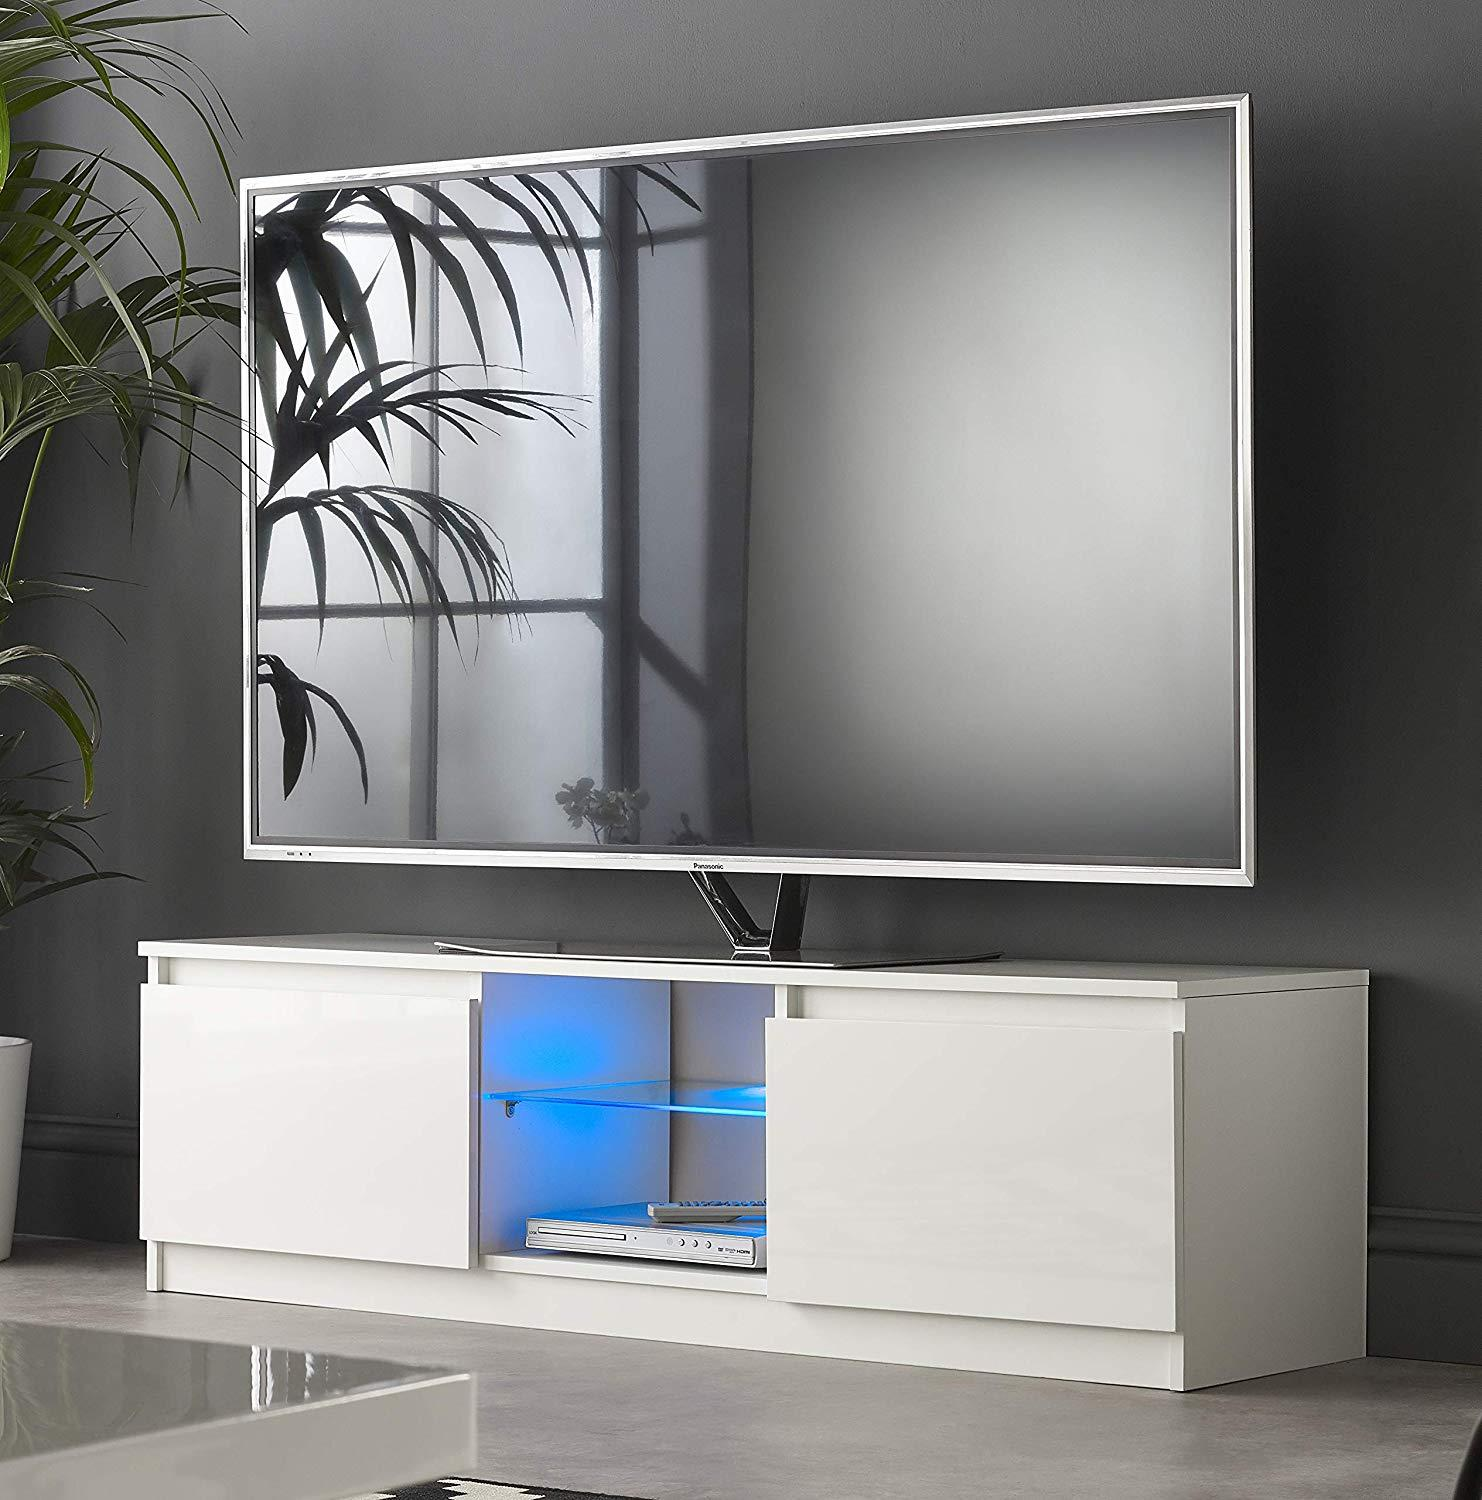 Tv Sideboard Modern New Modern Tv Unit Cabinet Stand Sideboard 120 Cm - White ...